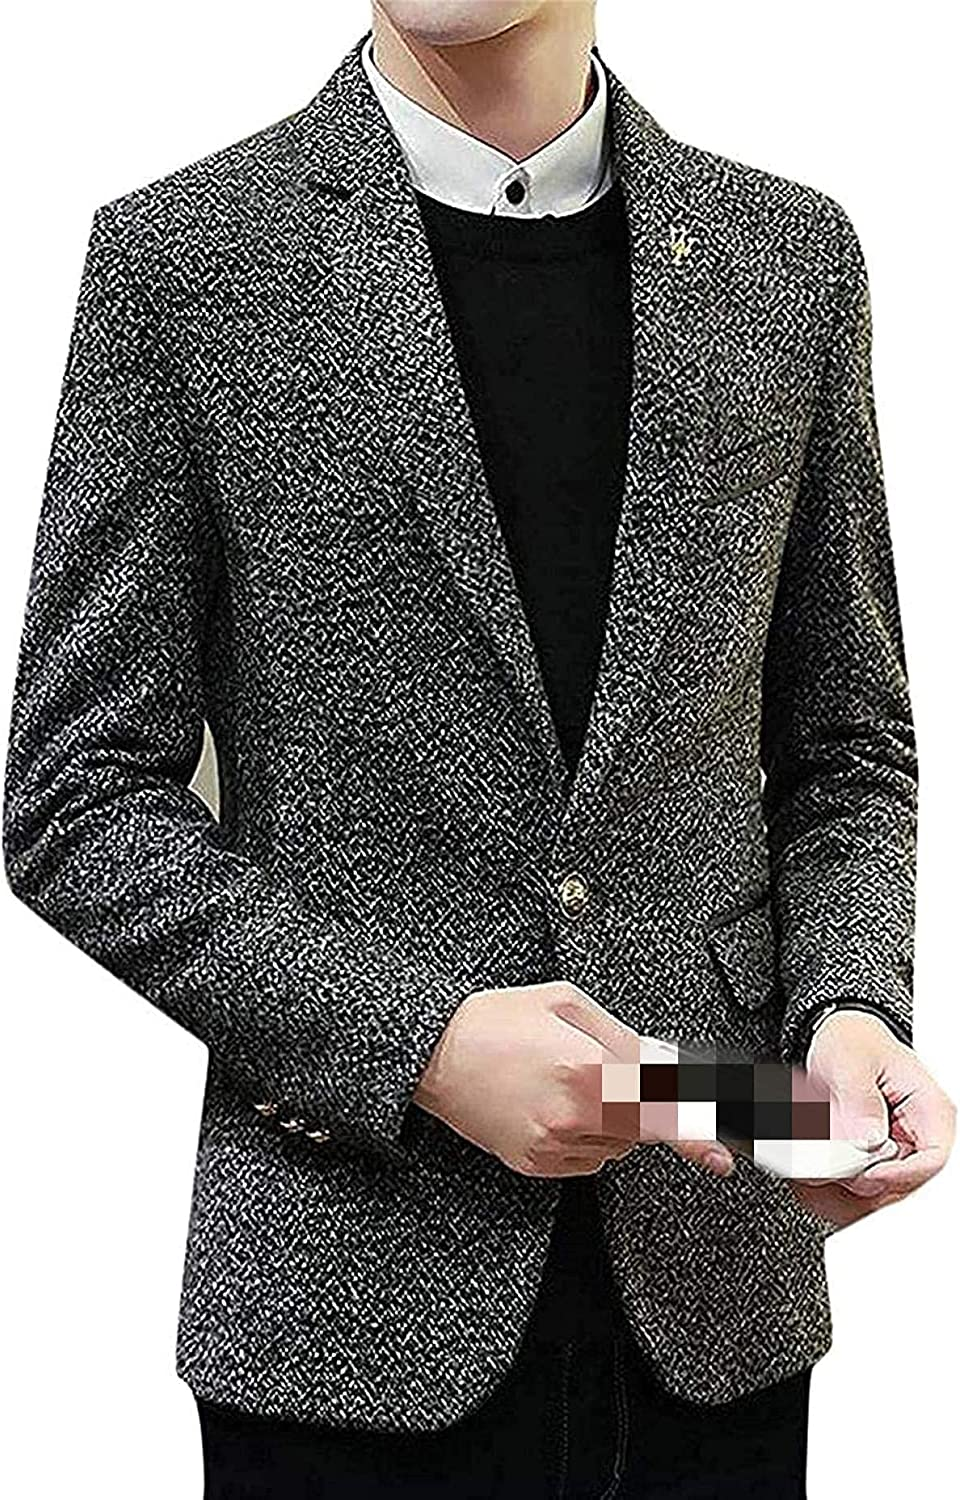 Mens Tweed Sport Coat Notched Raleigh Long Beach Mall Mall One Blazer Button Fit Jacket Slim